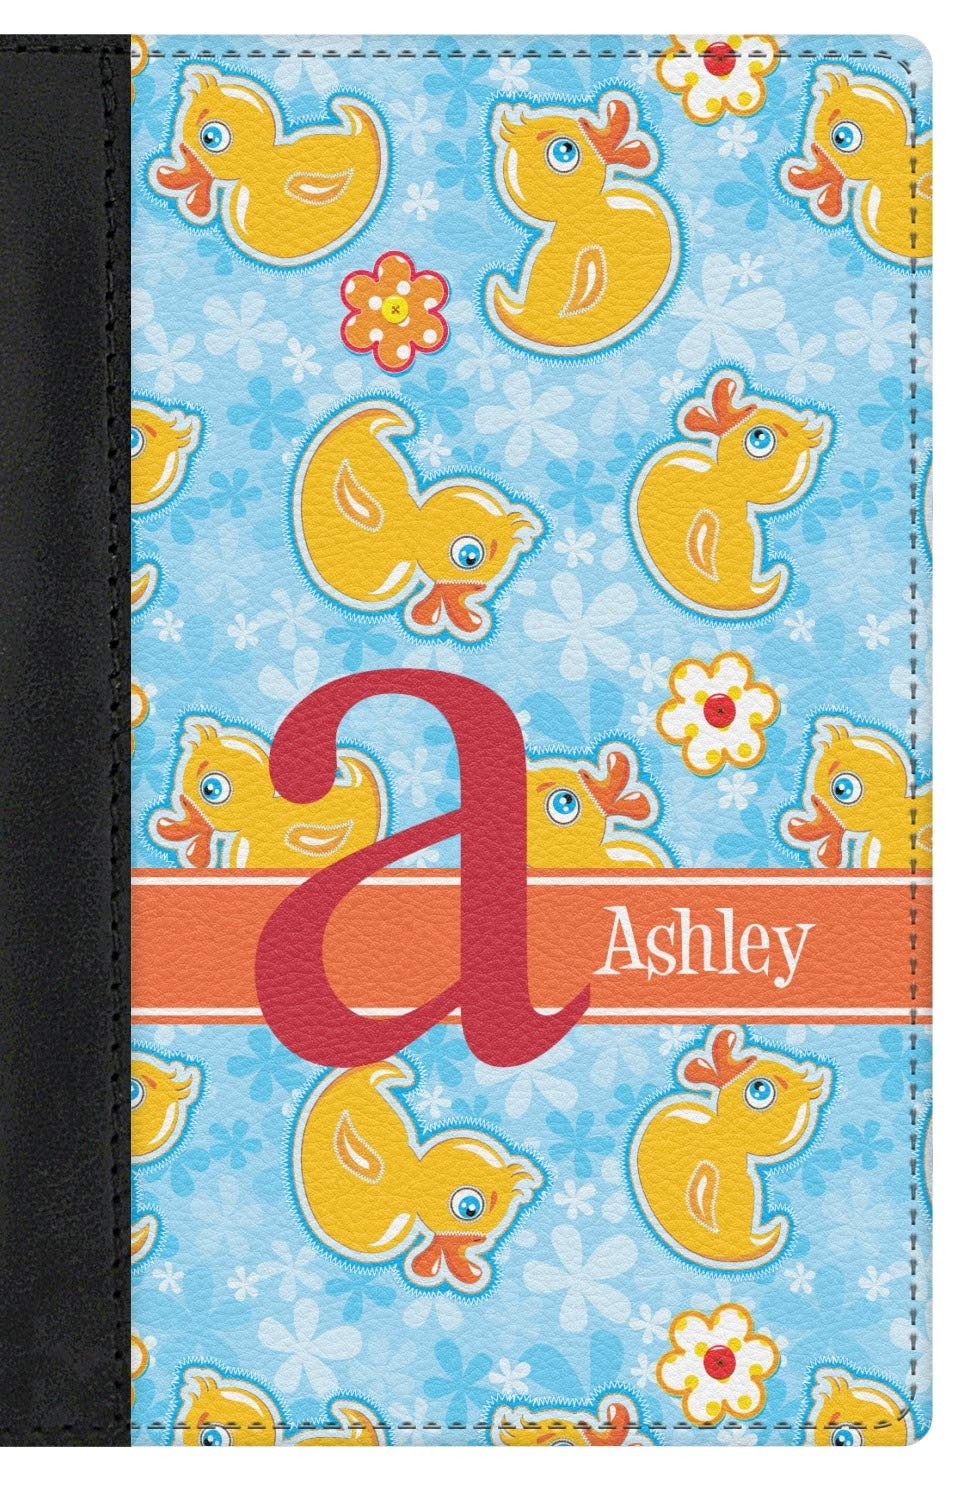 Rubber Duckies /& Flowers Genuine Leather Passport Cover Personalized